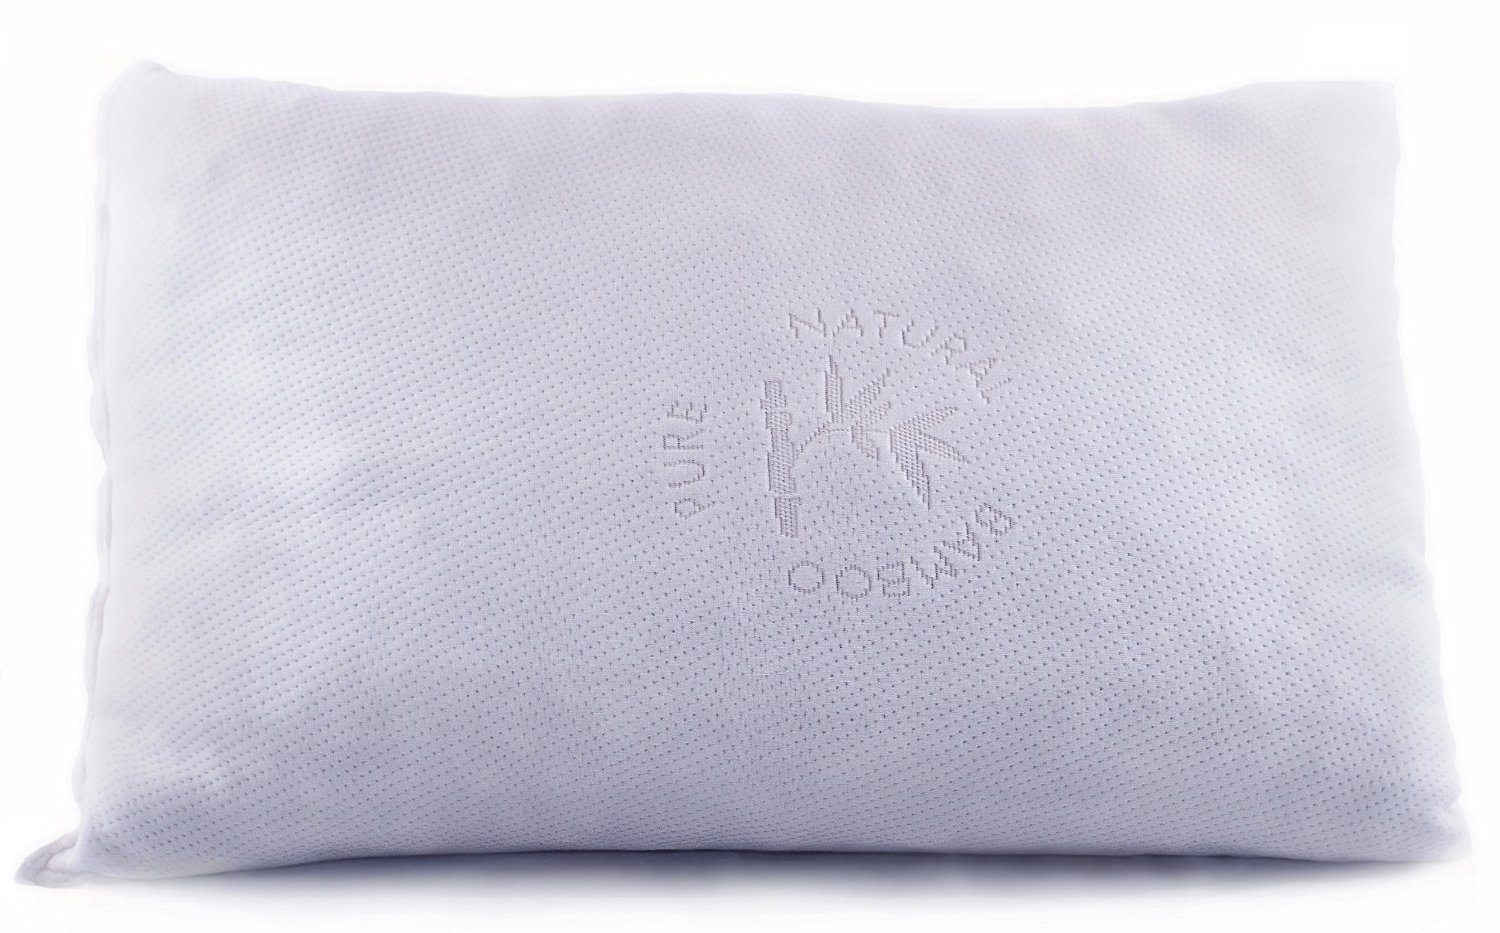 Good Life Essentials Shredded Memory Foam Pillow